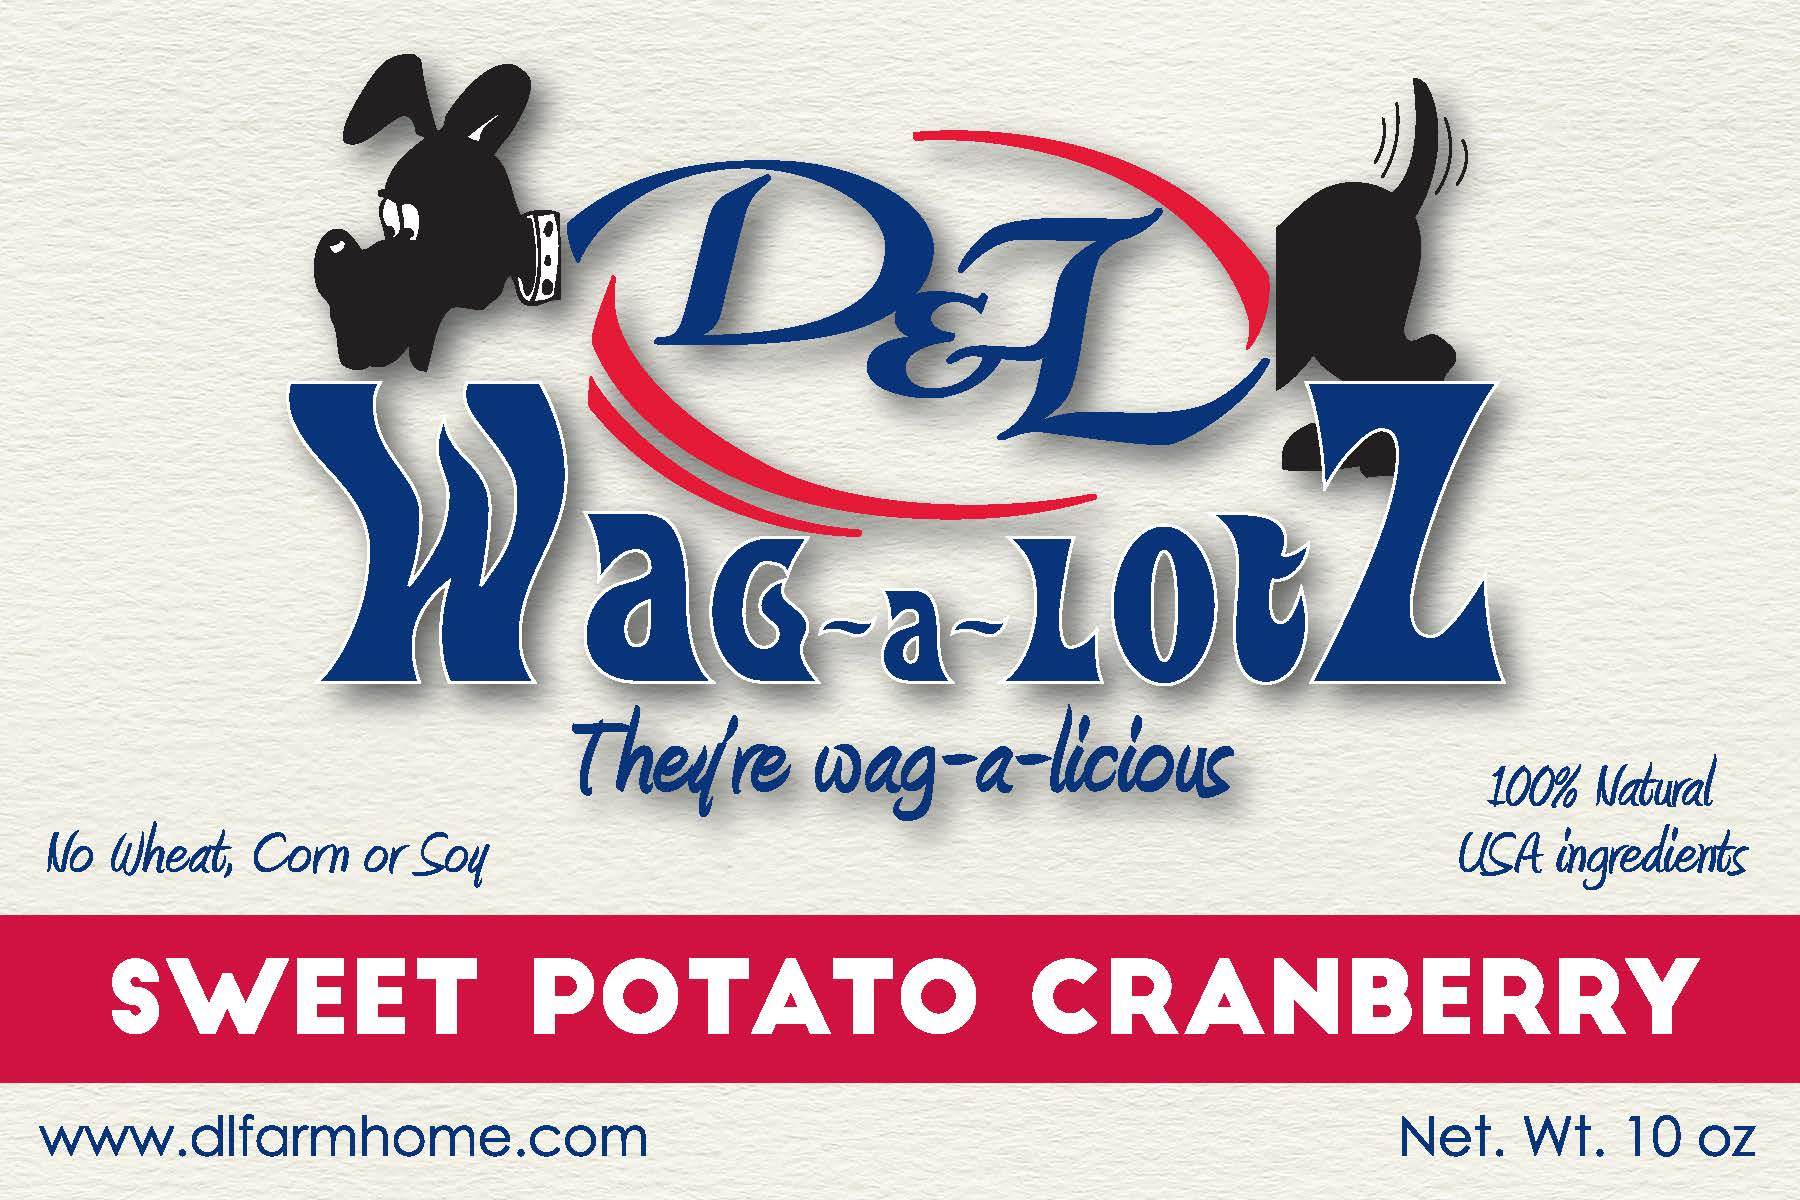 D&L Wag-a-LotZ Sweet Potato Cranberry Dog Treats 10.5 oz